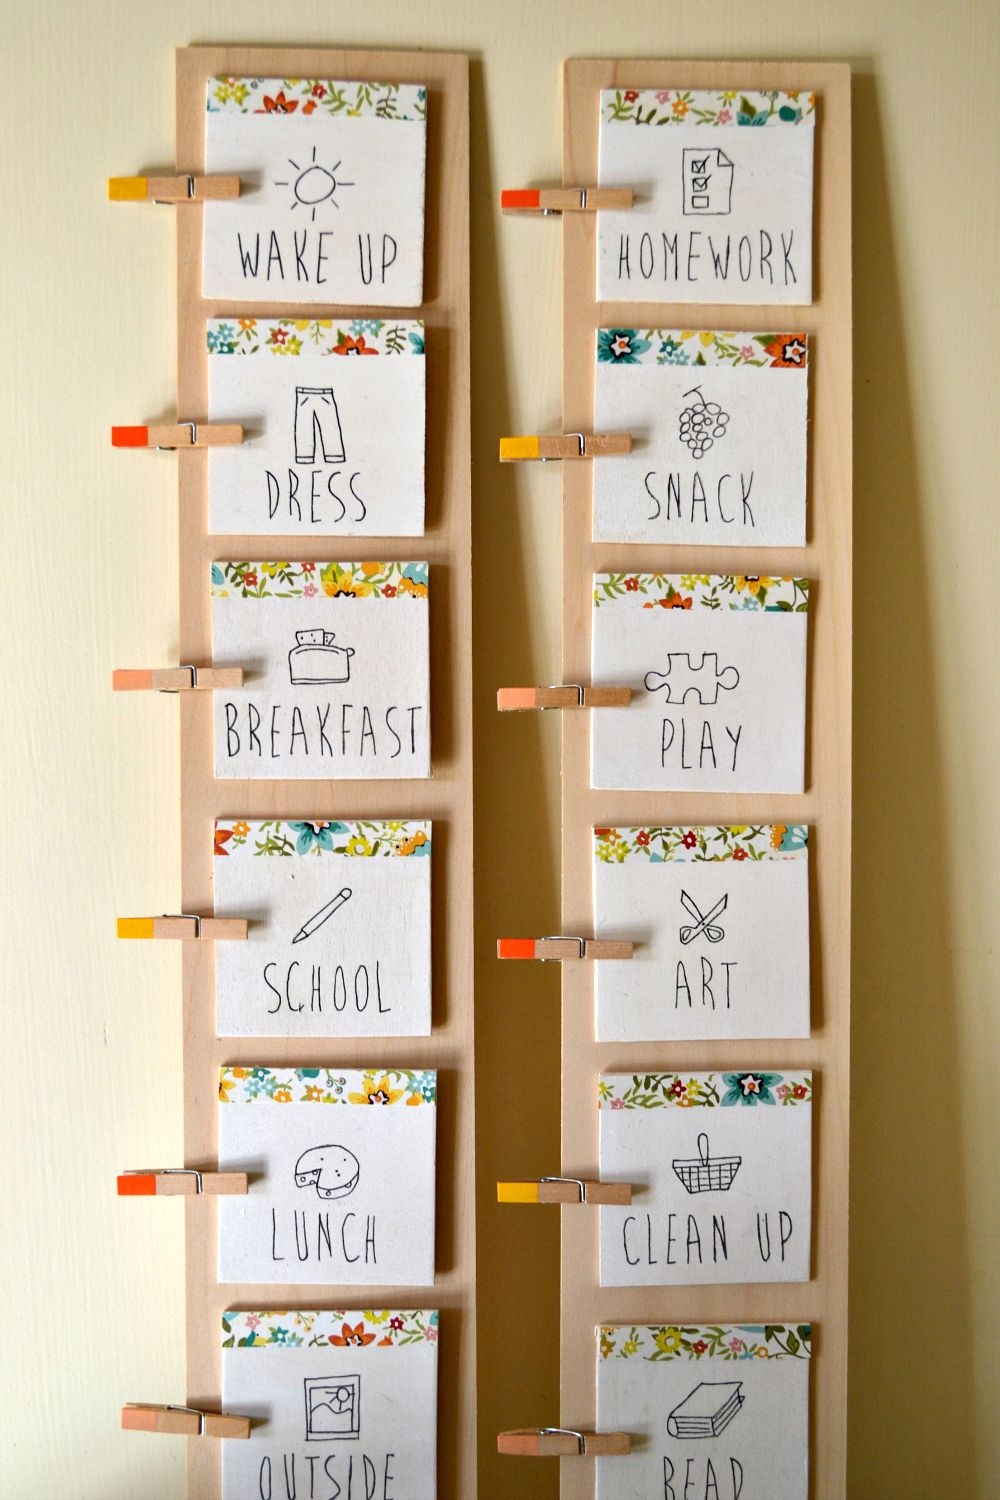 Routine cards cool for all of you who have children wonder if  can adapt it day care also diy daily chart kids group room ideas pinterest rh